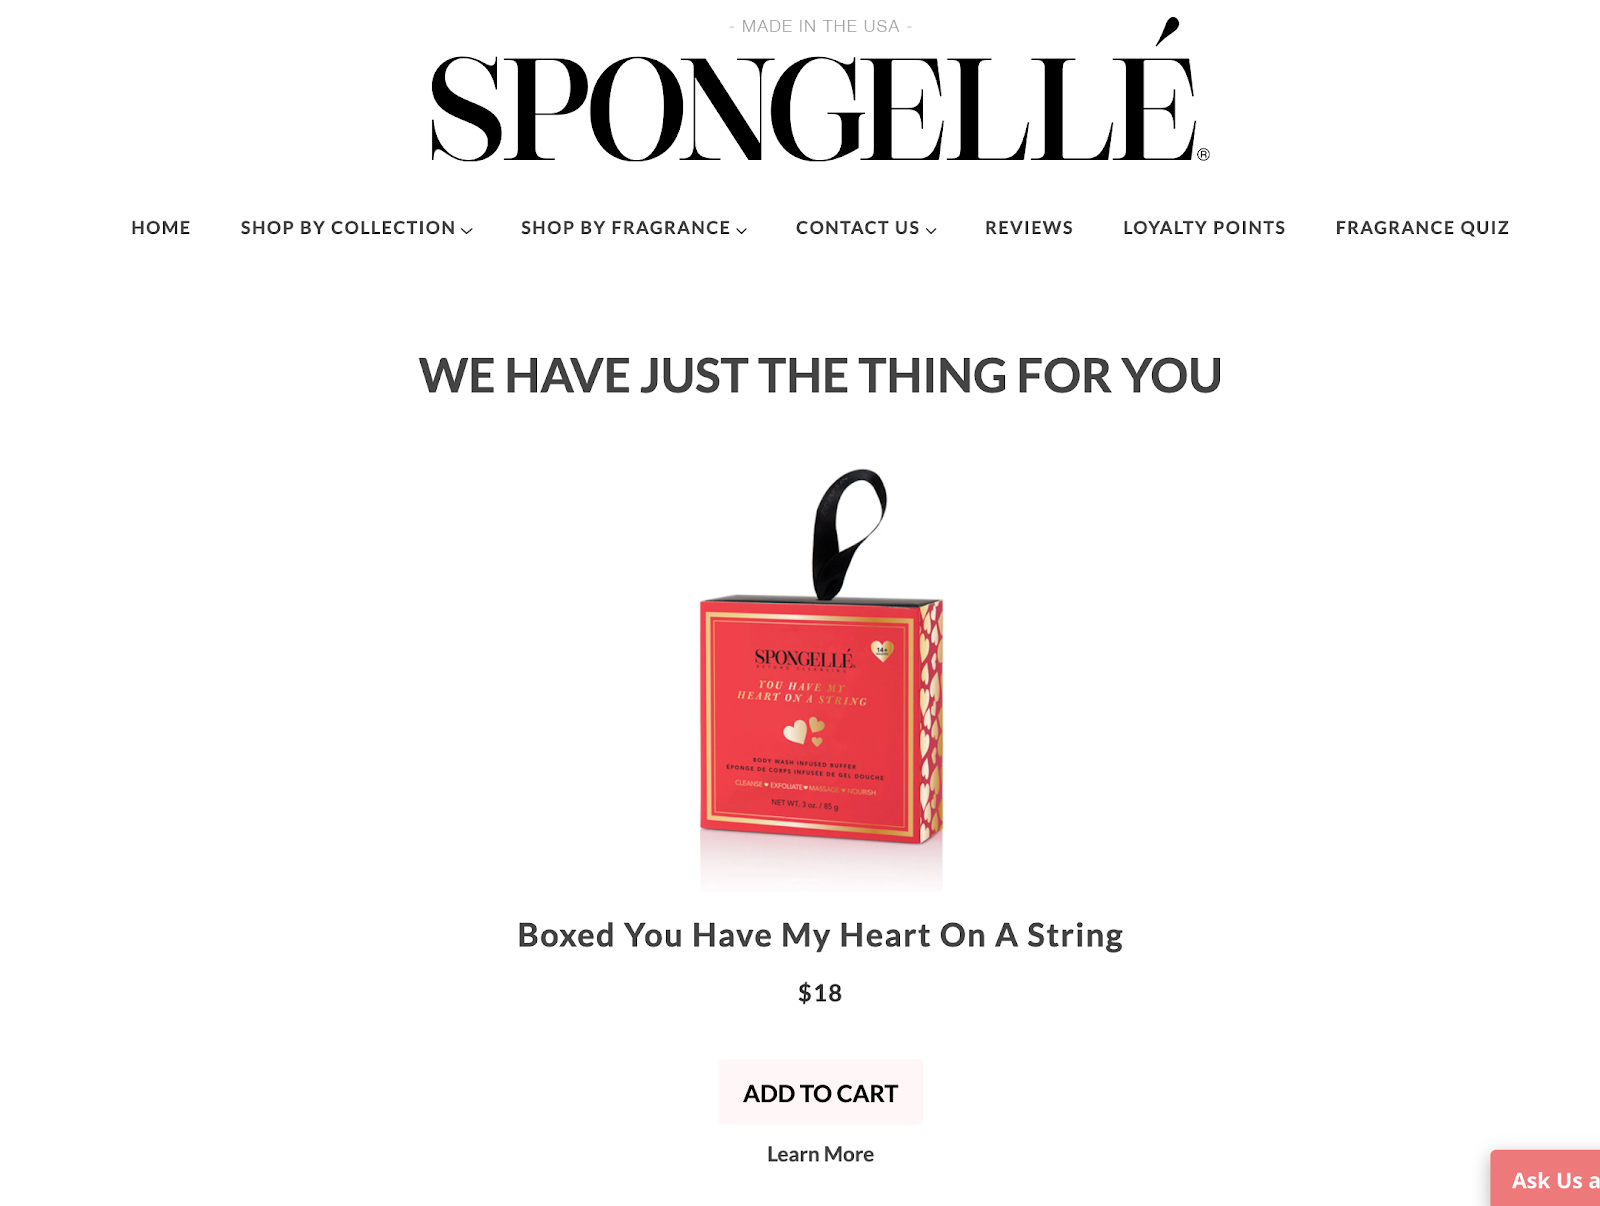 Example of Spongelle's quiz results page